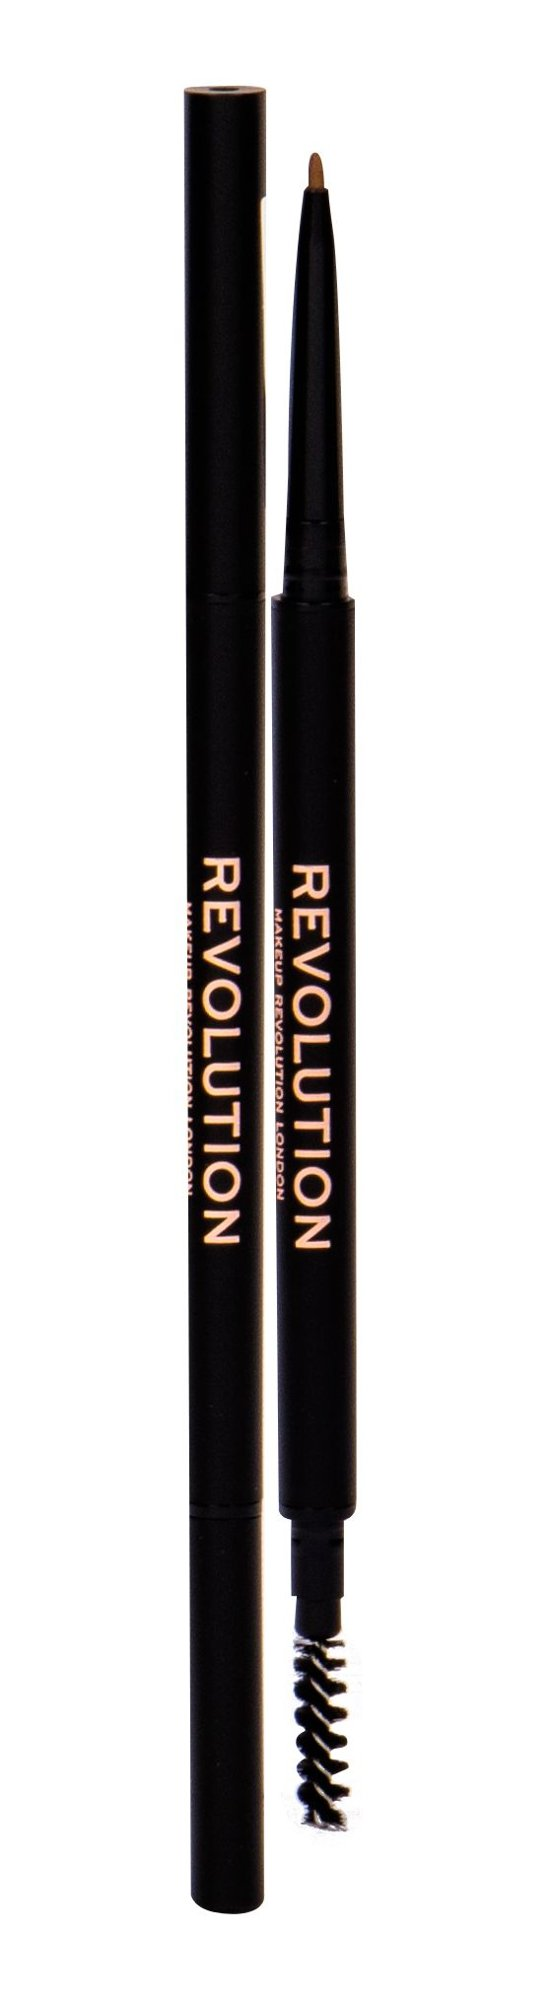 Makeup Revolution London Precise Brow Pencil  (Tužka na obočí, W, 0,05 g)